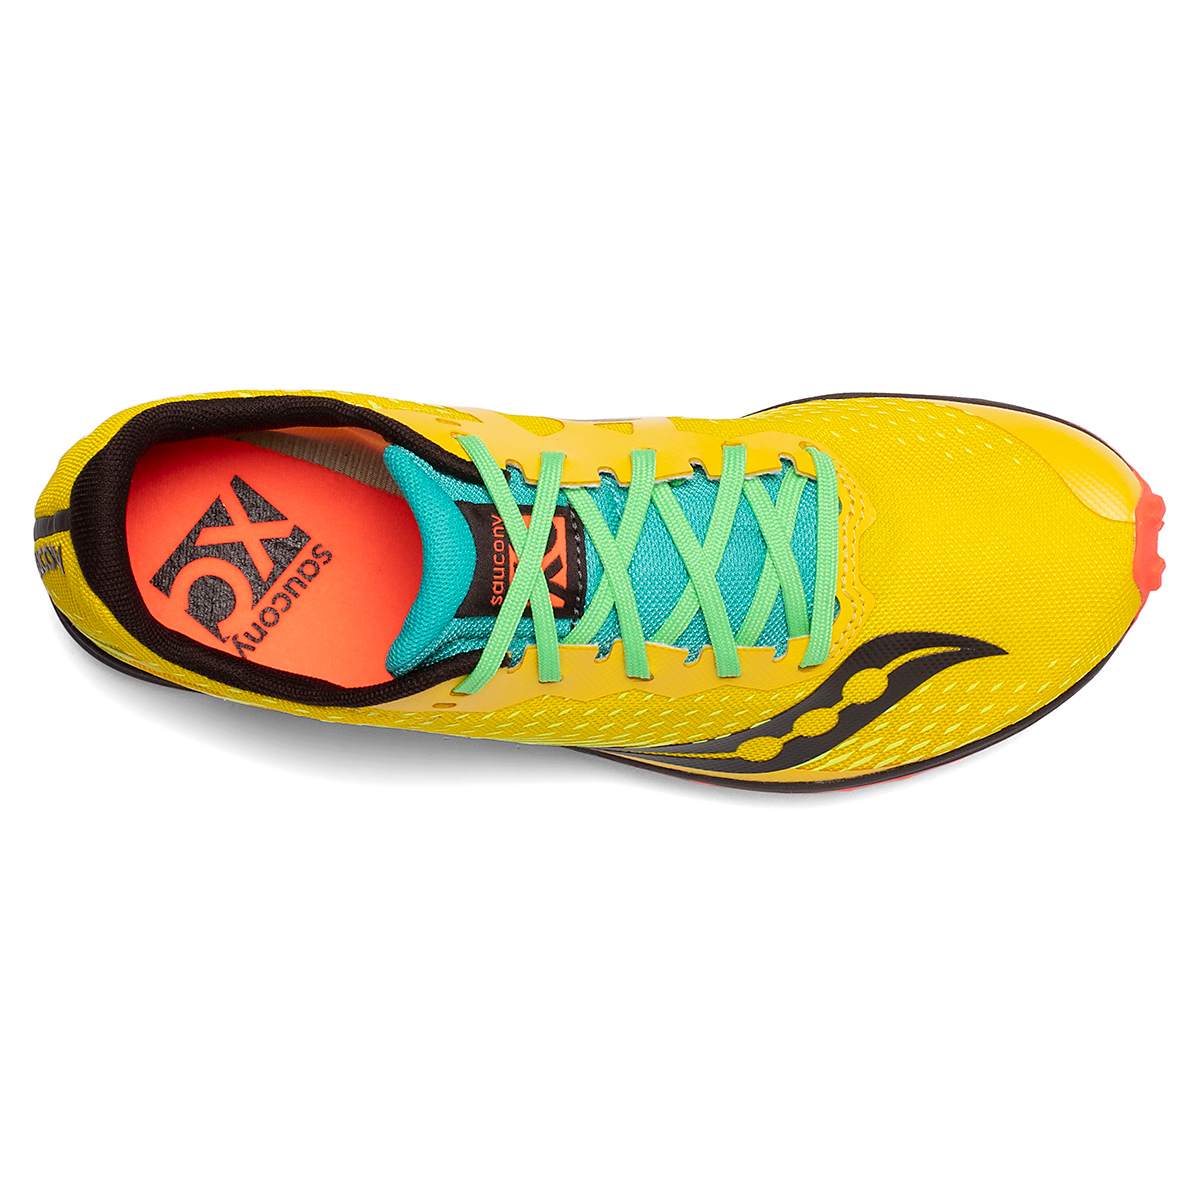 Men's Saucony Kilkenny XC8 Track Spikes - Color: Yellow Mutant - Size: 8 - Width: Regular, Yellow Mutant, large, image 3